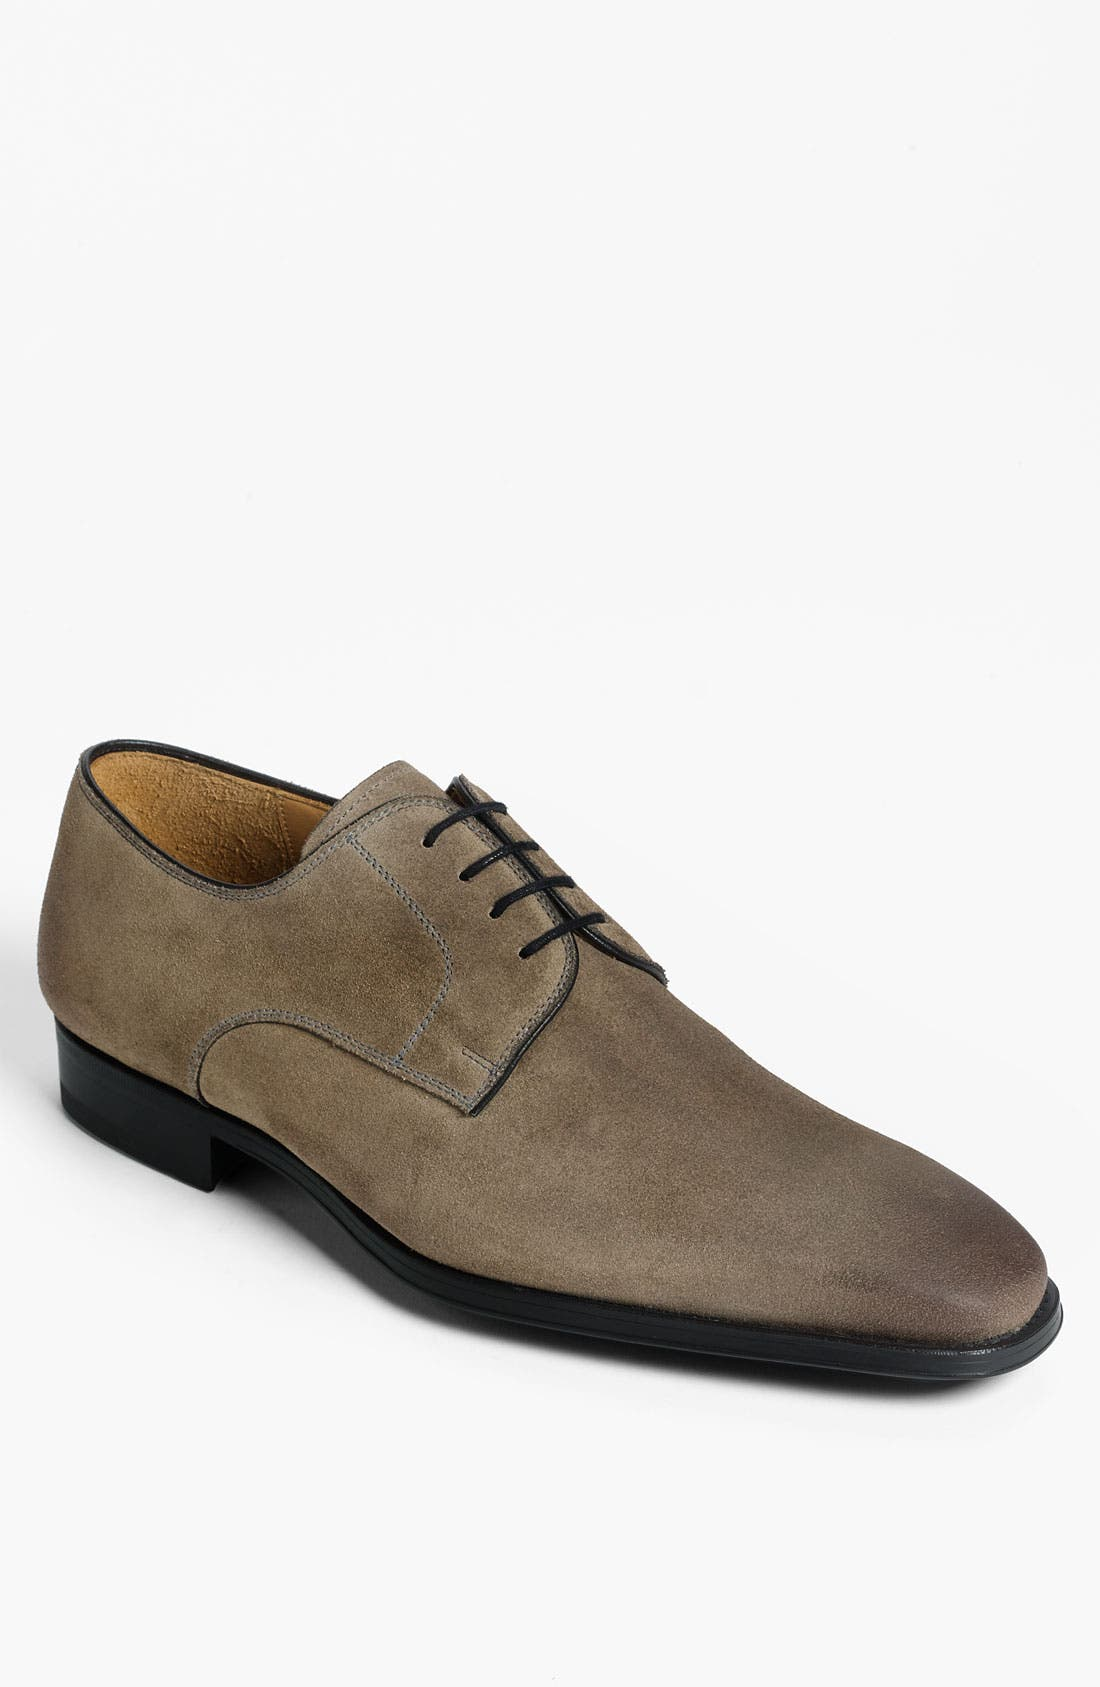 Main Image - Magnanni 'Dino' Suede Buck Shoe